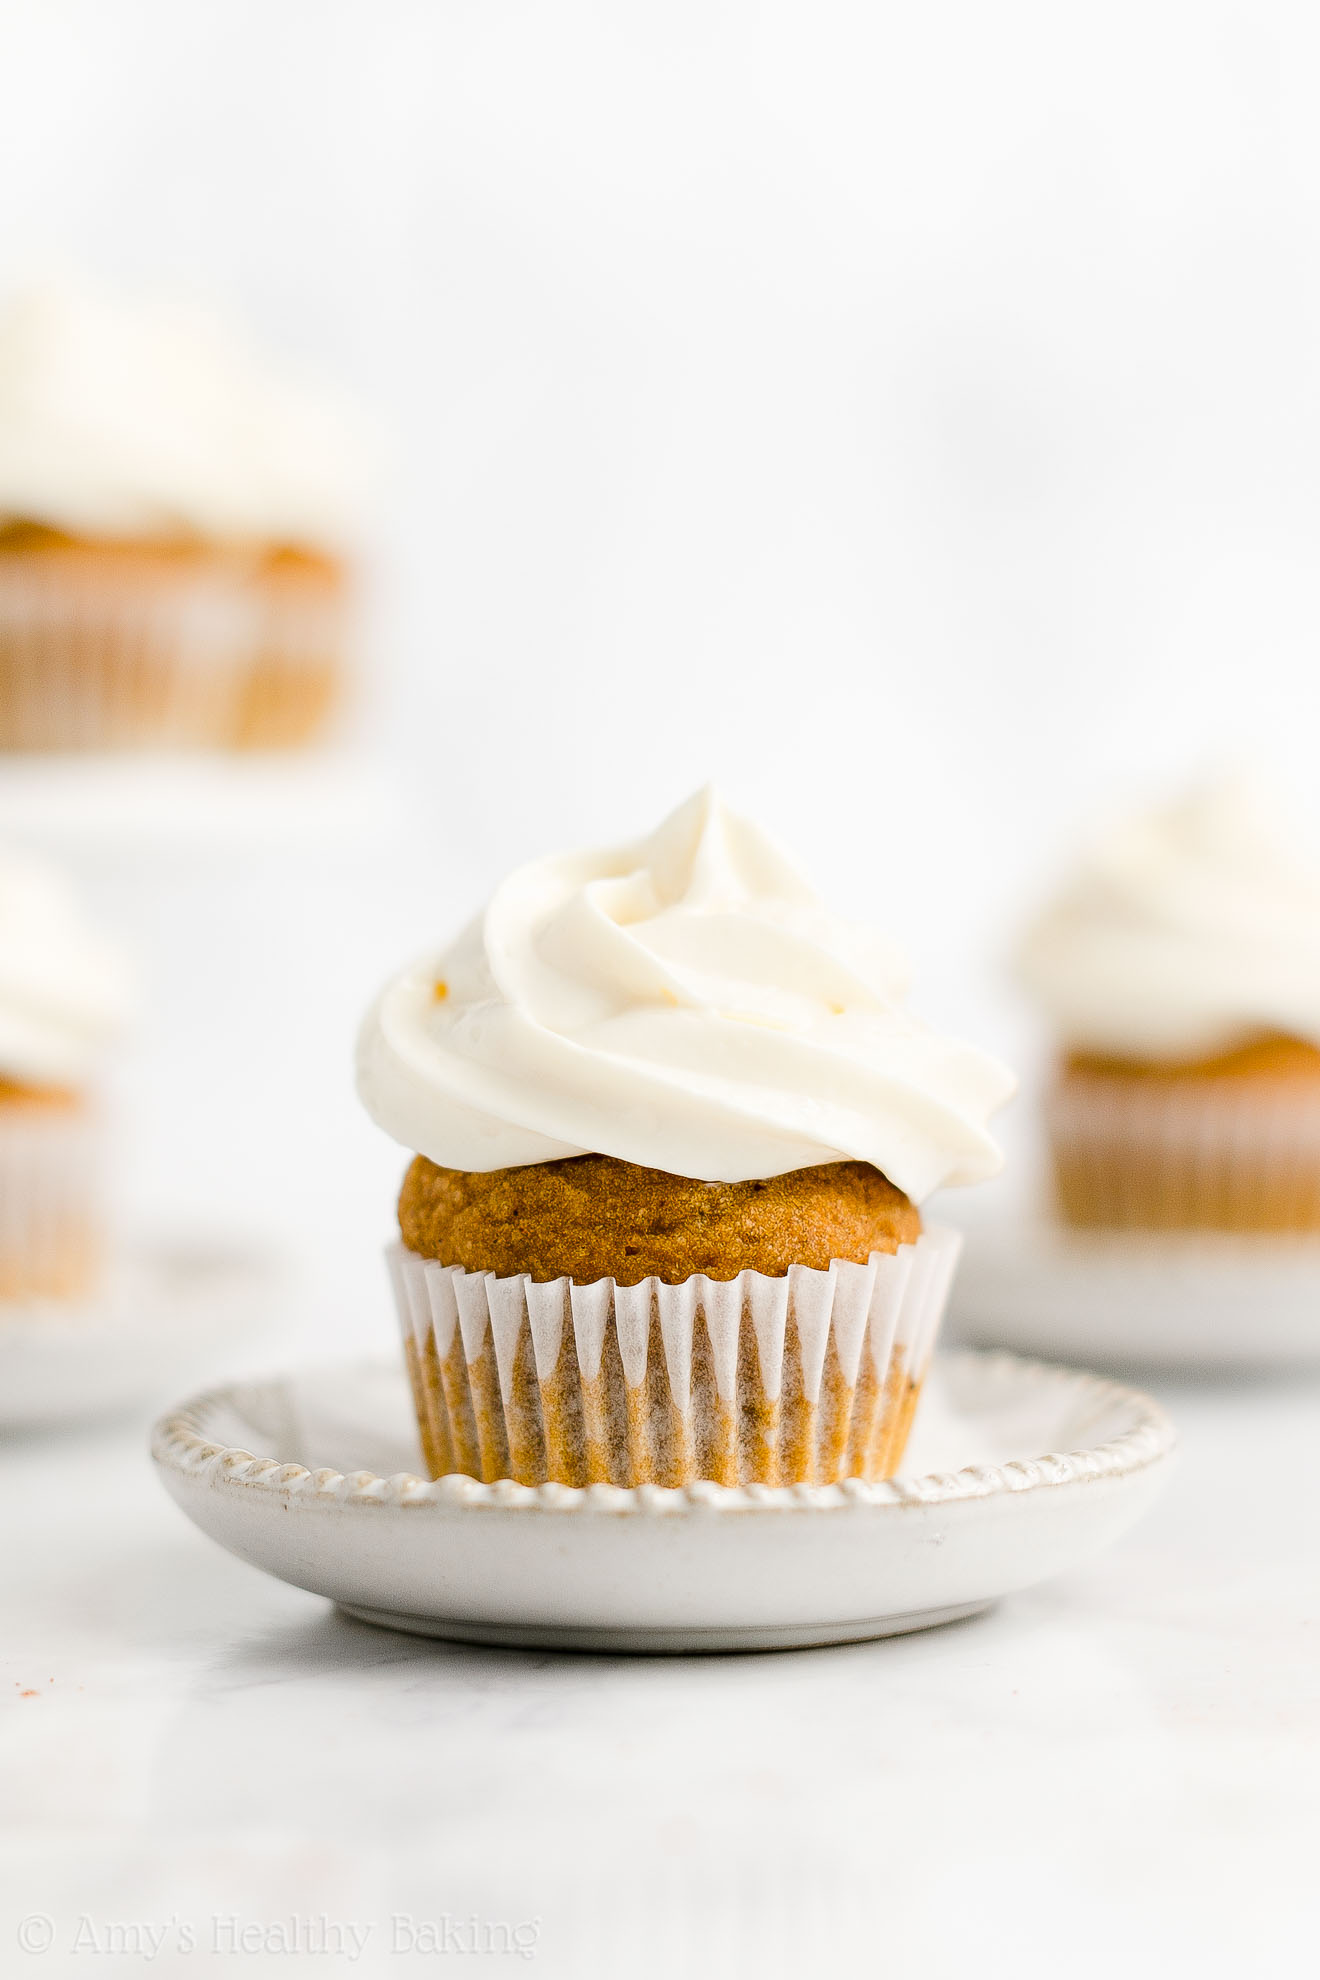 Easy Healthy Sugar Free Mini Pumpkin Cupcakes + Cream Cheese Frosting